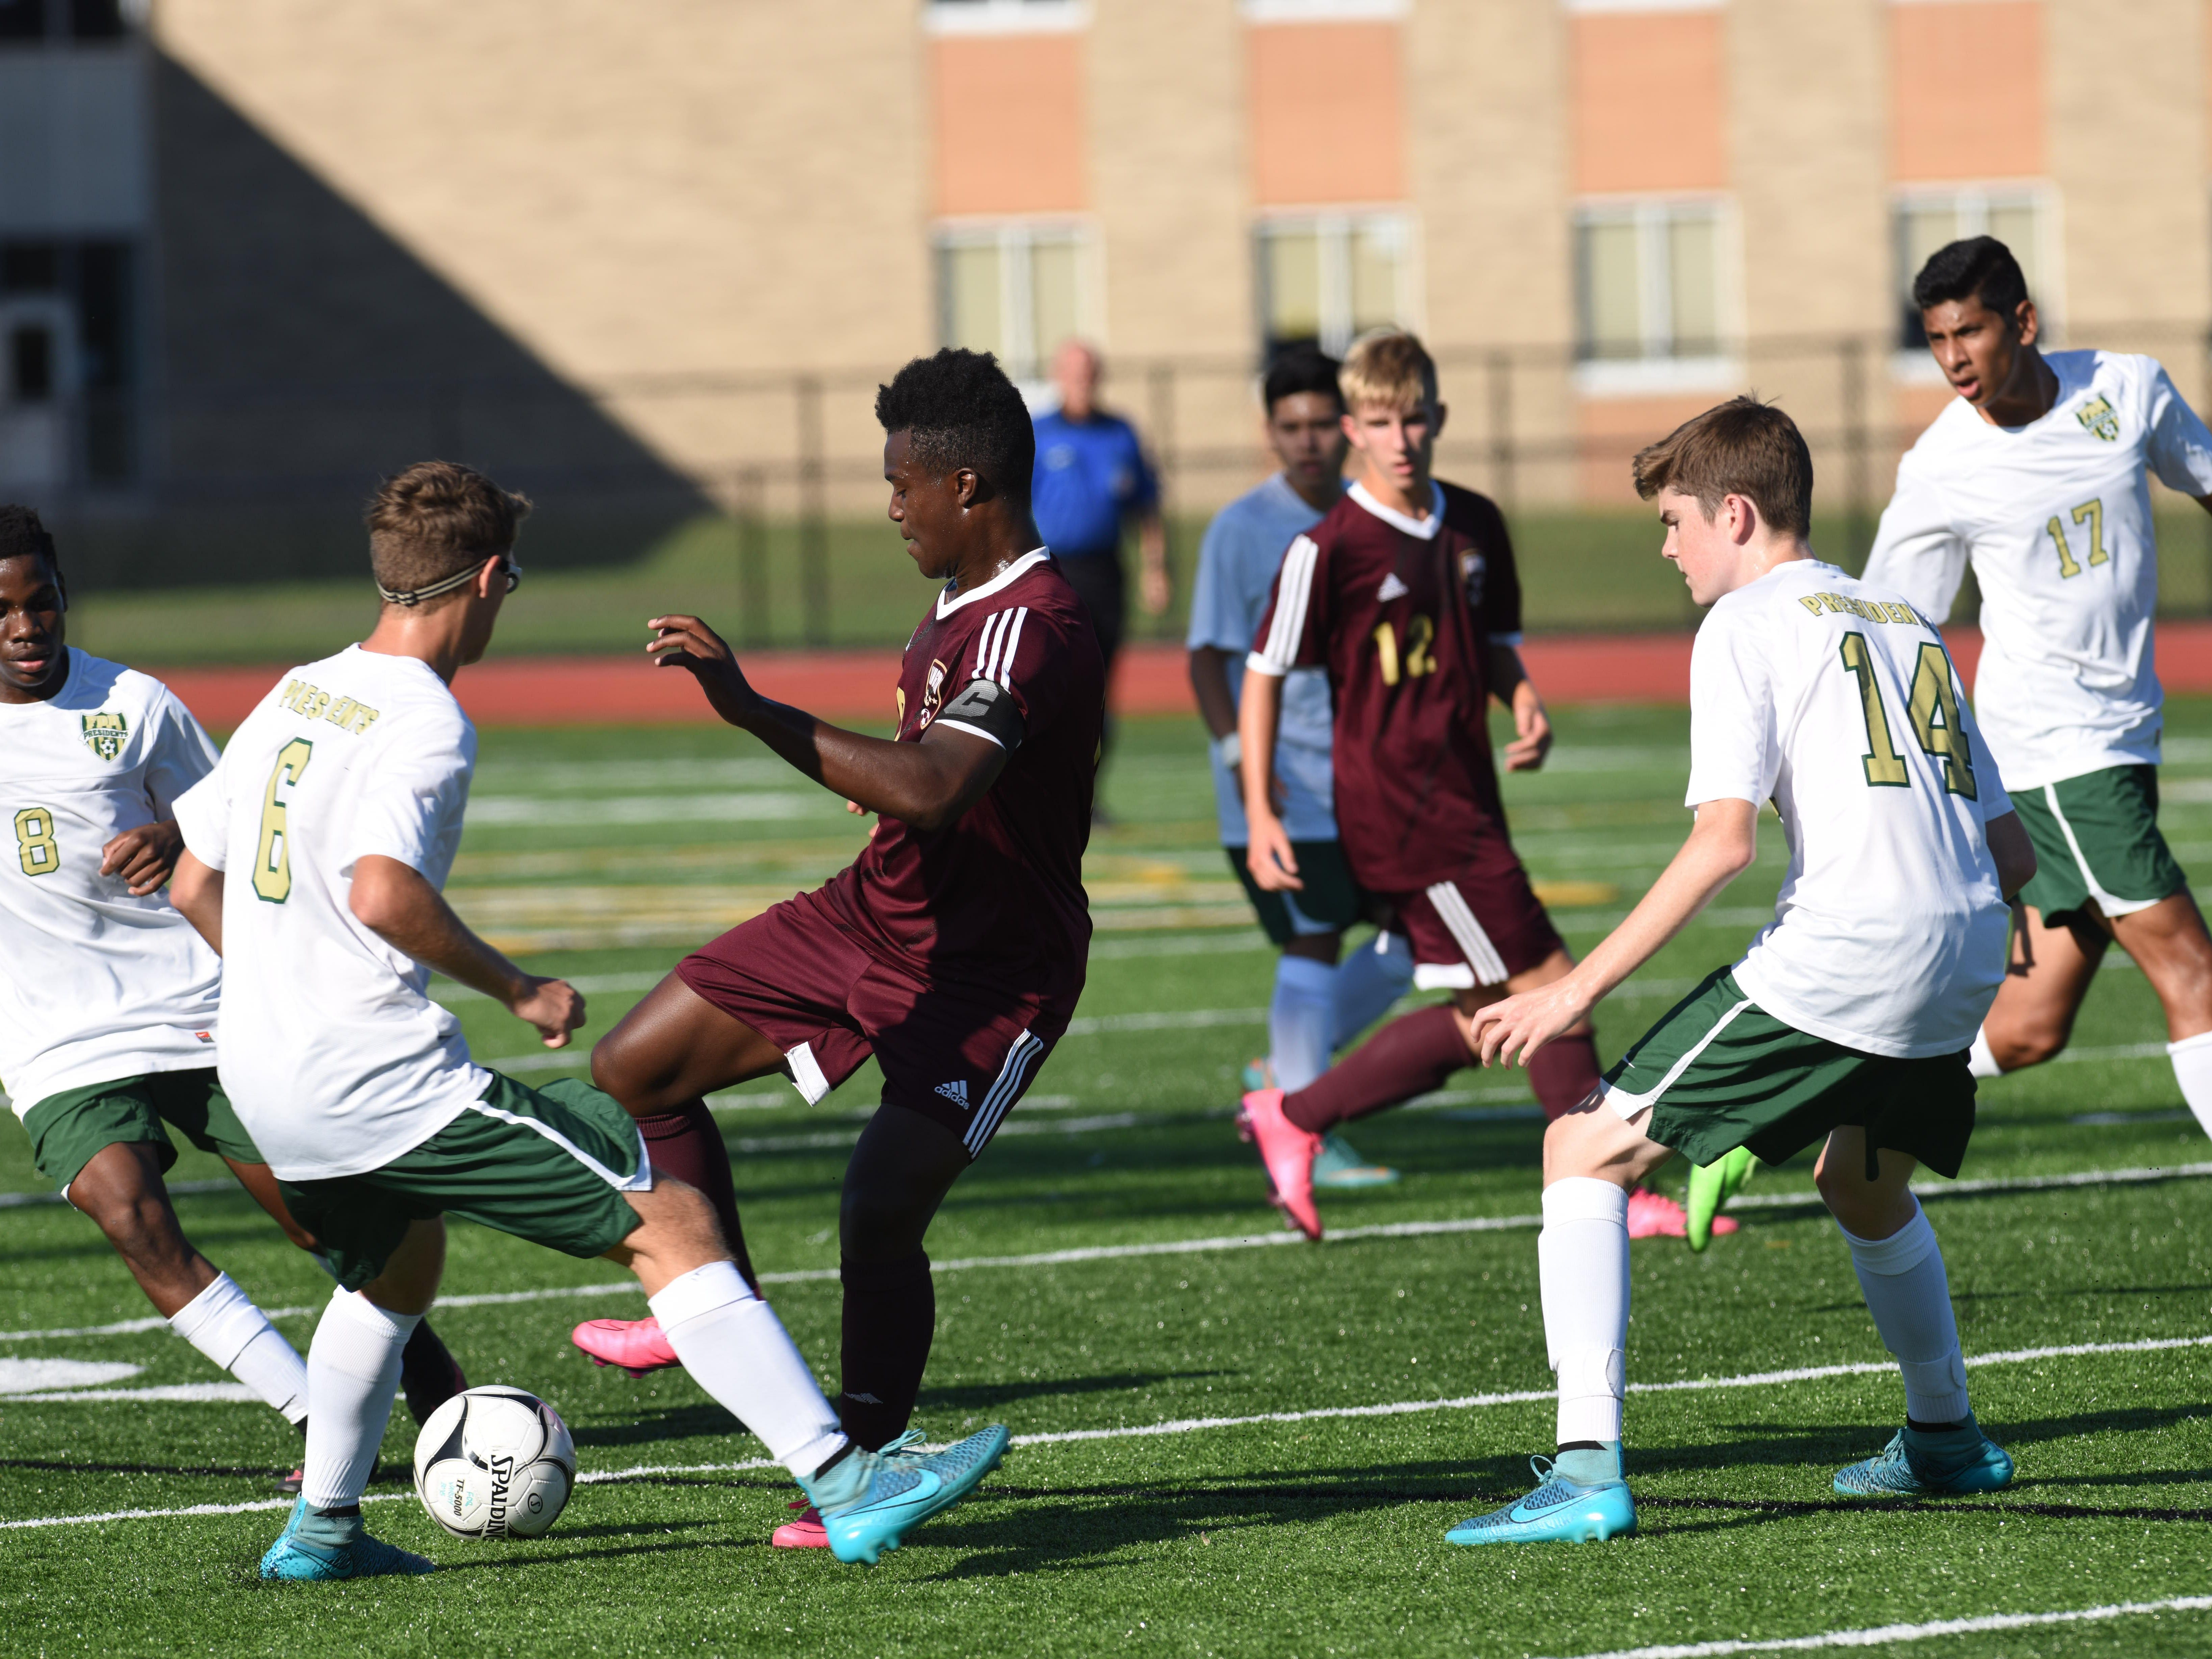 Arlington's Dillon Ashong, center, tries to keep the ball away from FDR's (left to right) Markese Shelby, T.J. Illuminate, and Bryan Steigenwald.